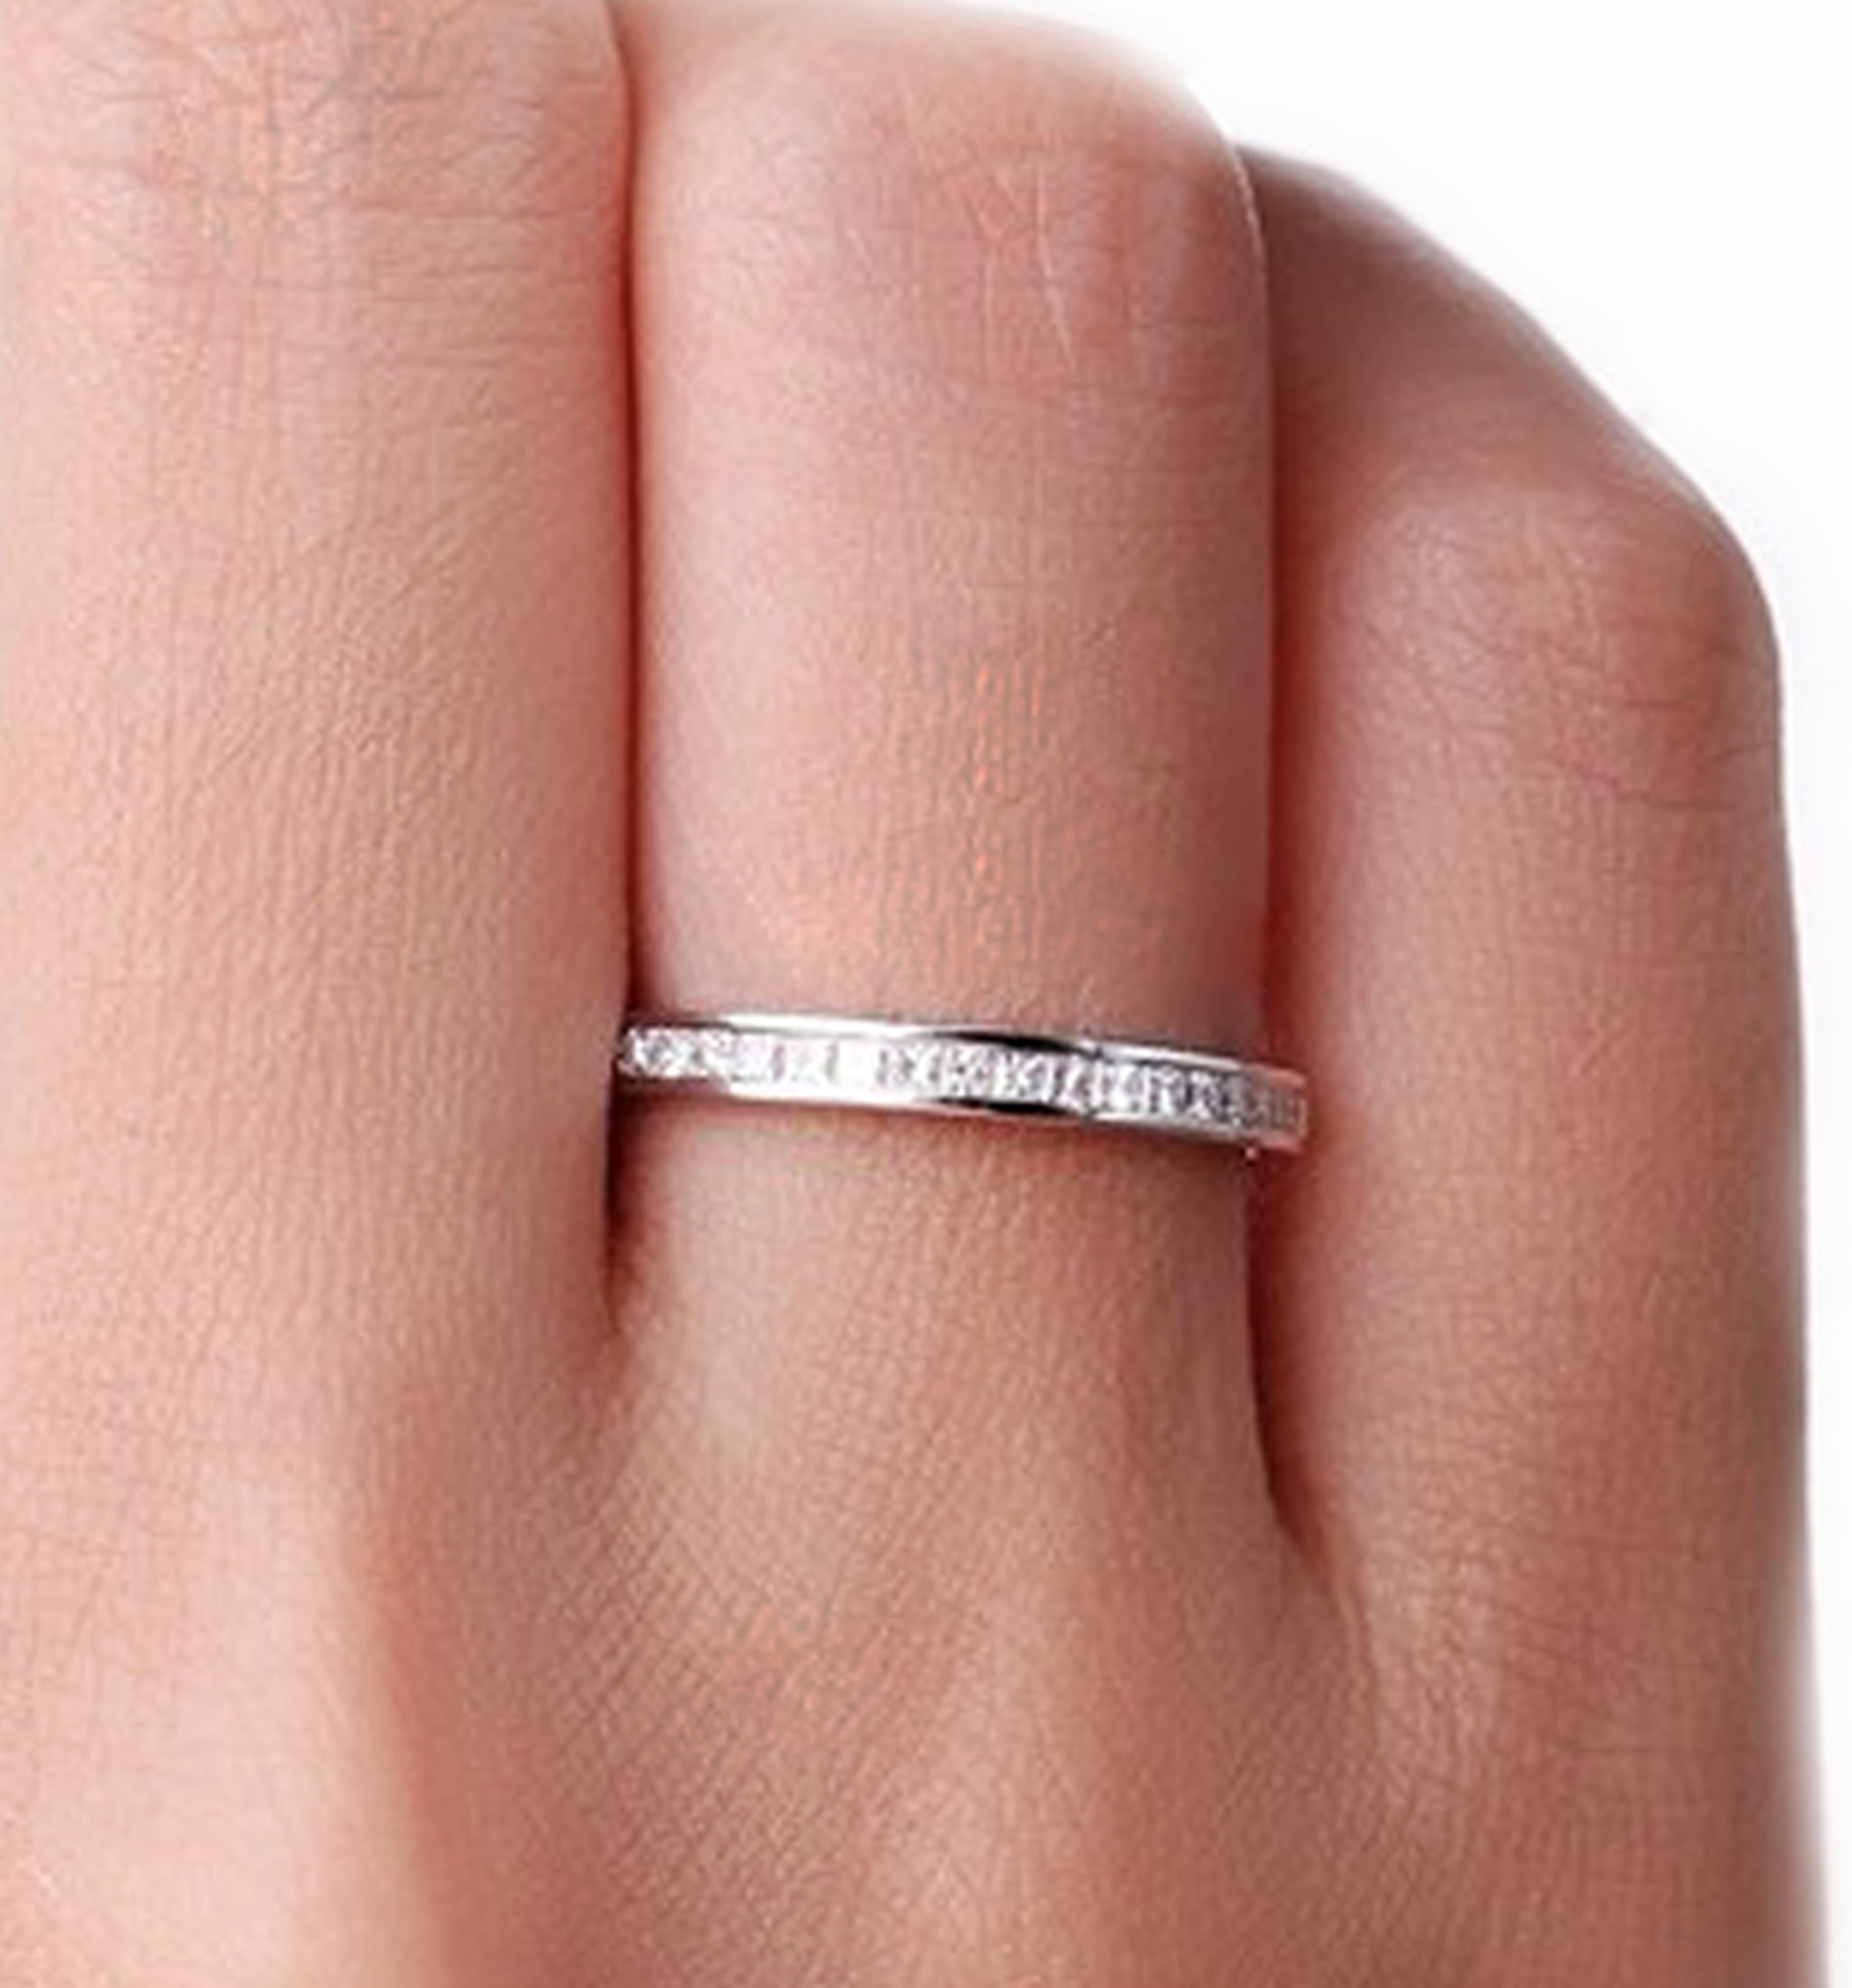 18k White Gold 1.50 Carat Princess Cut Diamond Eternity Band Custom ...